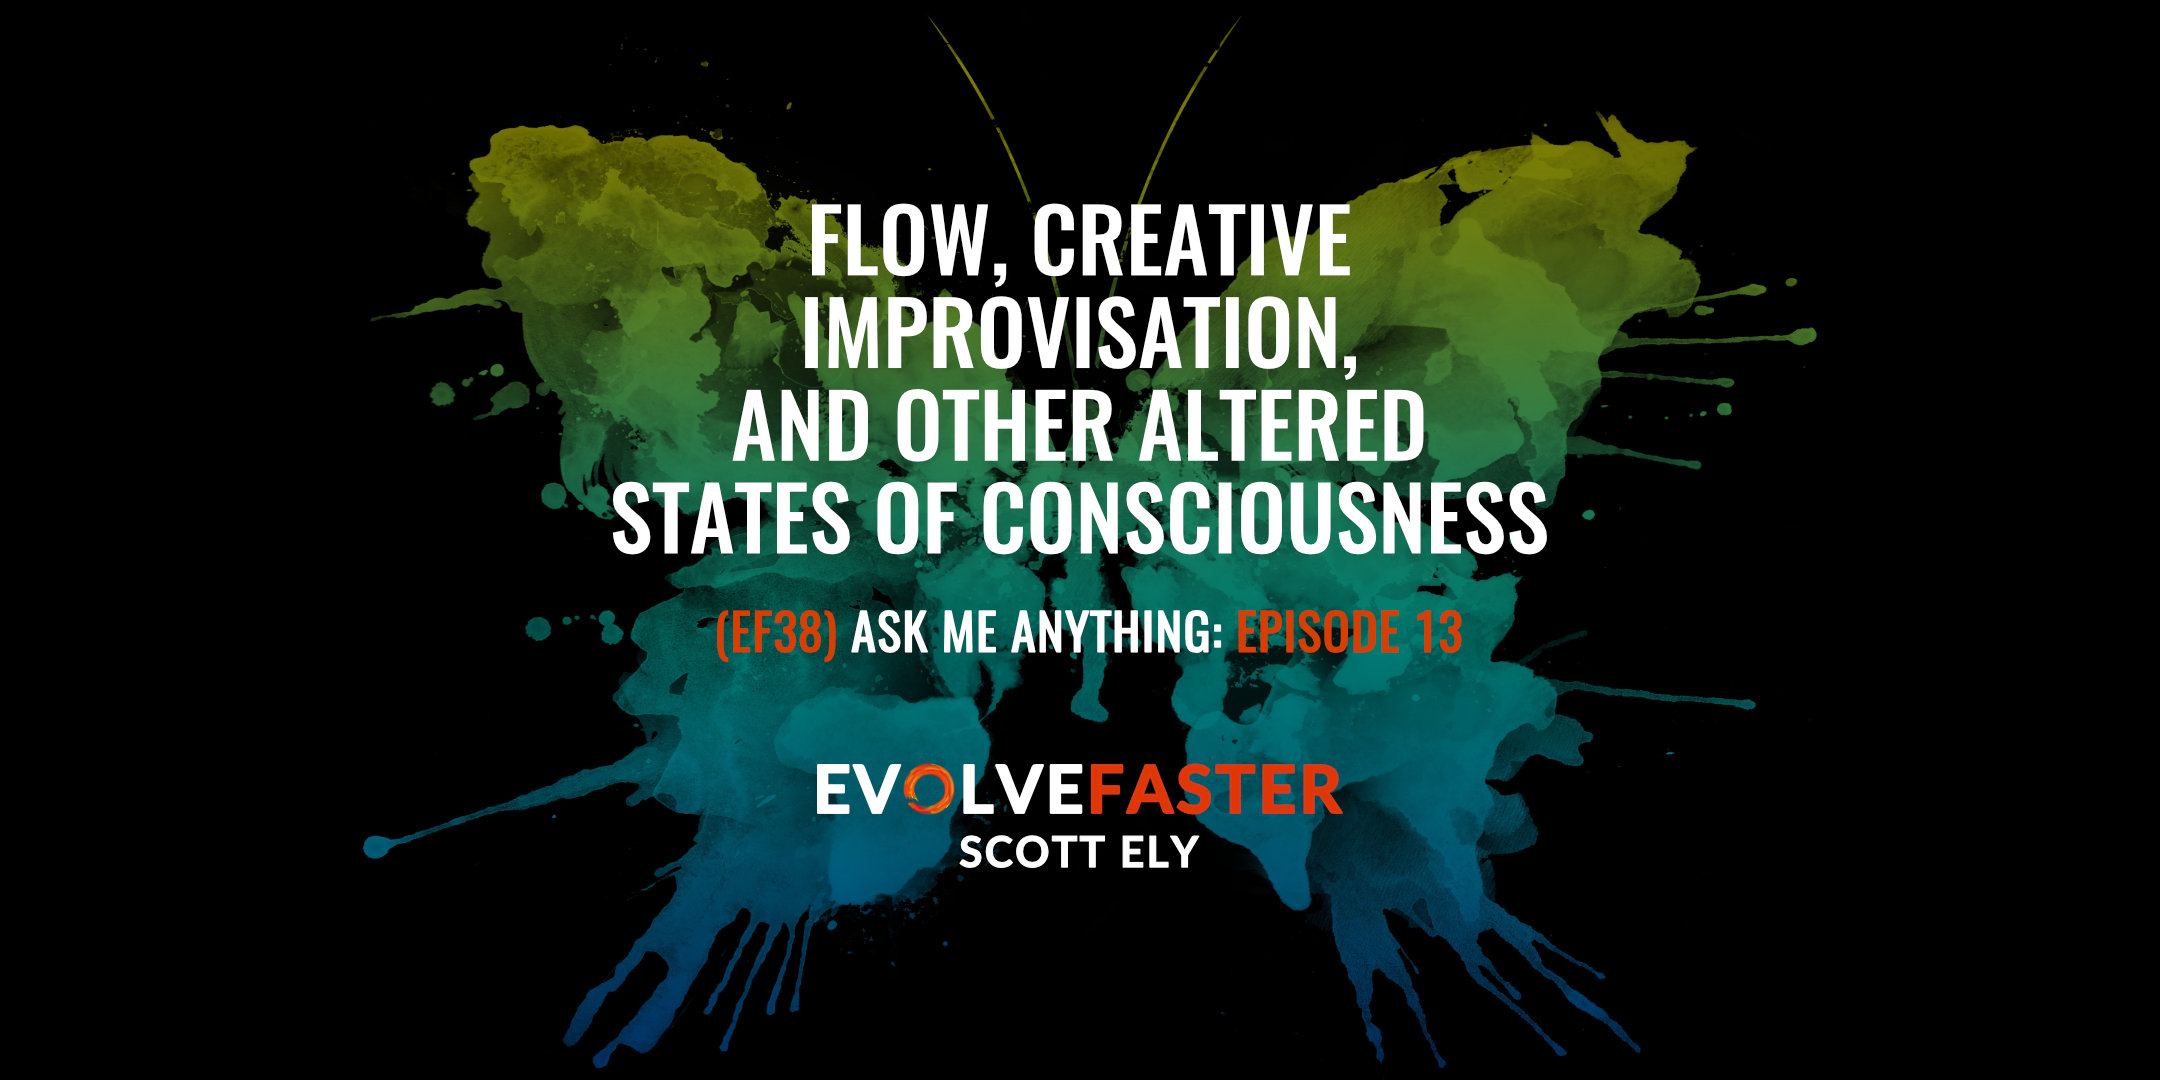 (EF38) AMA-EF13: Flow, Creative Improvisation and Other Altered States of Consciousness Ask Me Anything for Episode EF13